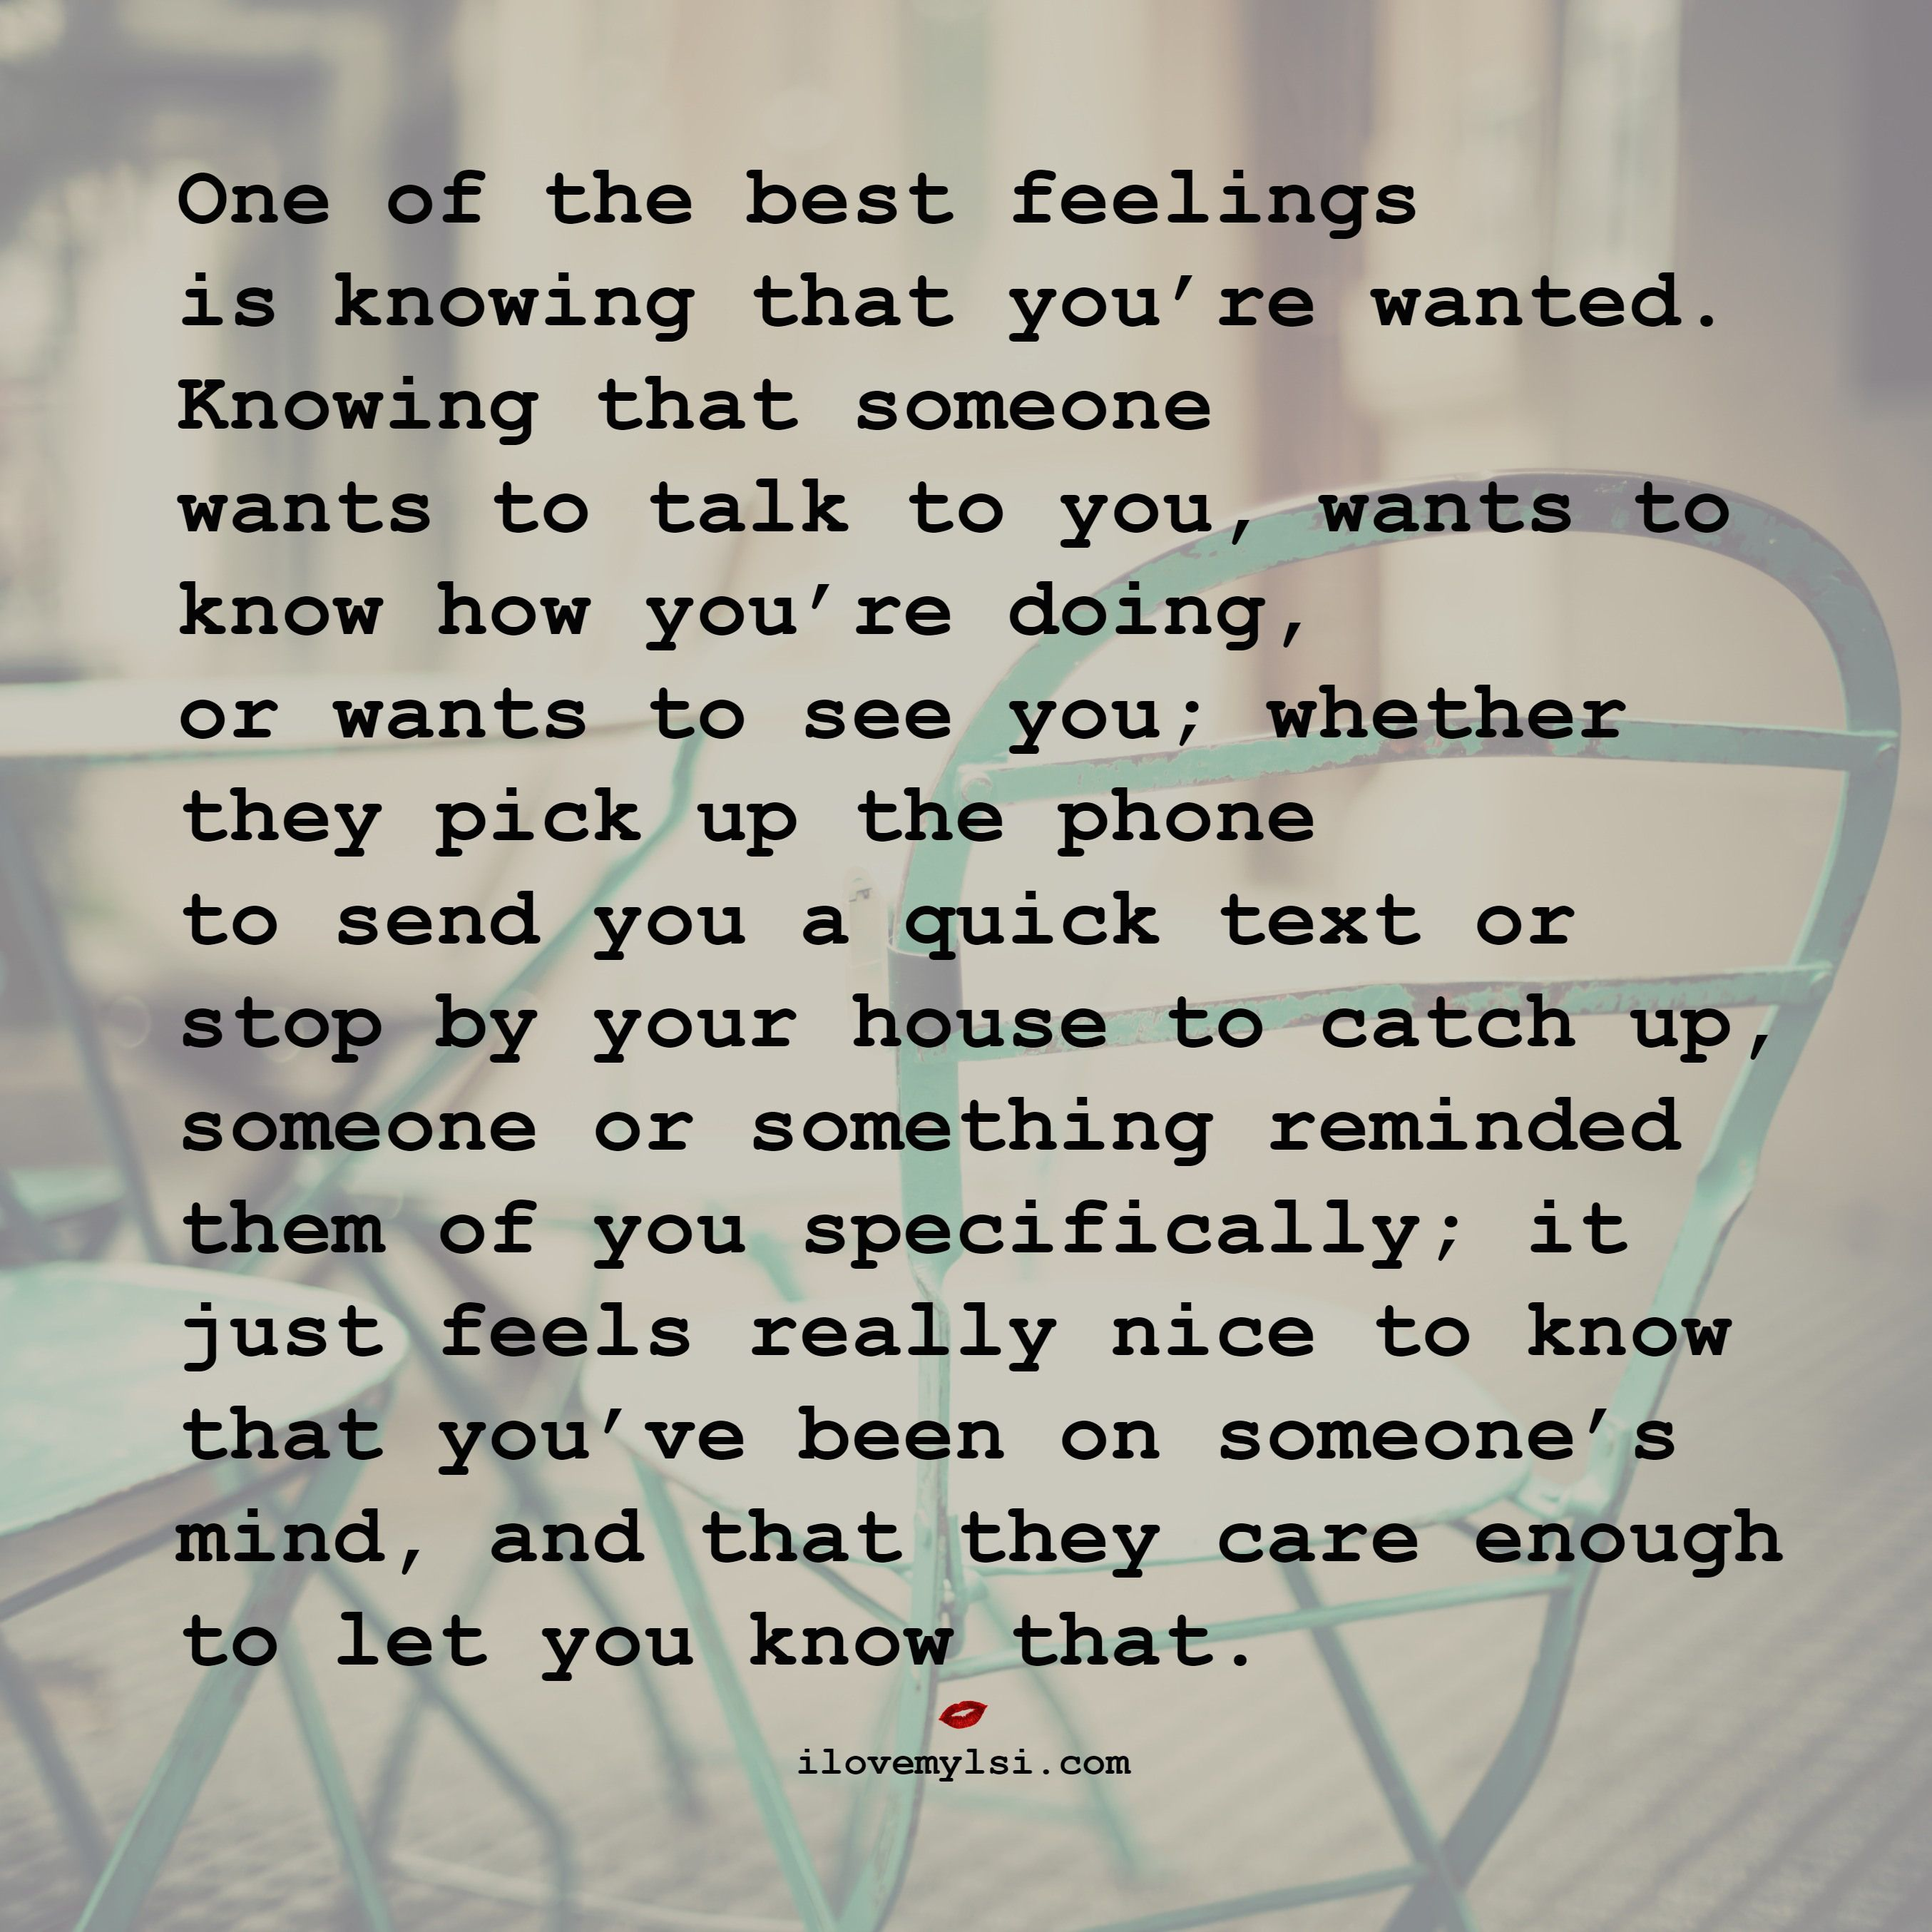 One Of The Best Feelings Is Knowing That You Re Wanted I Love My Lsi Words Quotes Inspirational Quotes Words